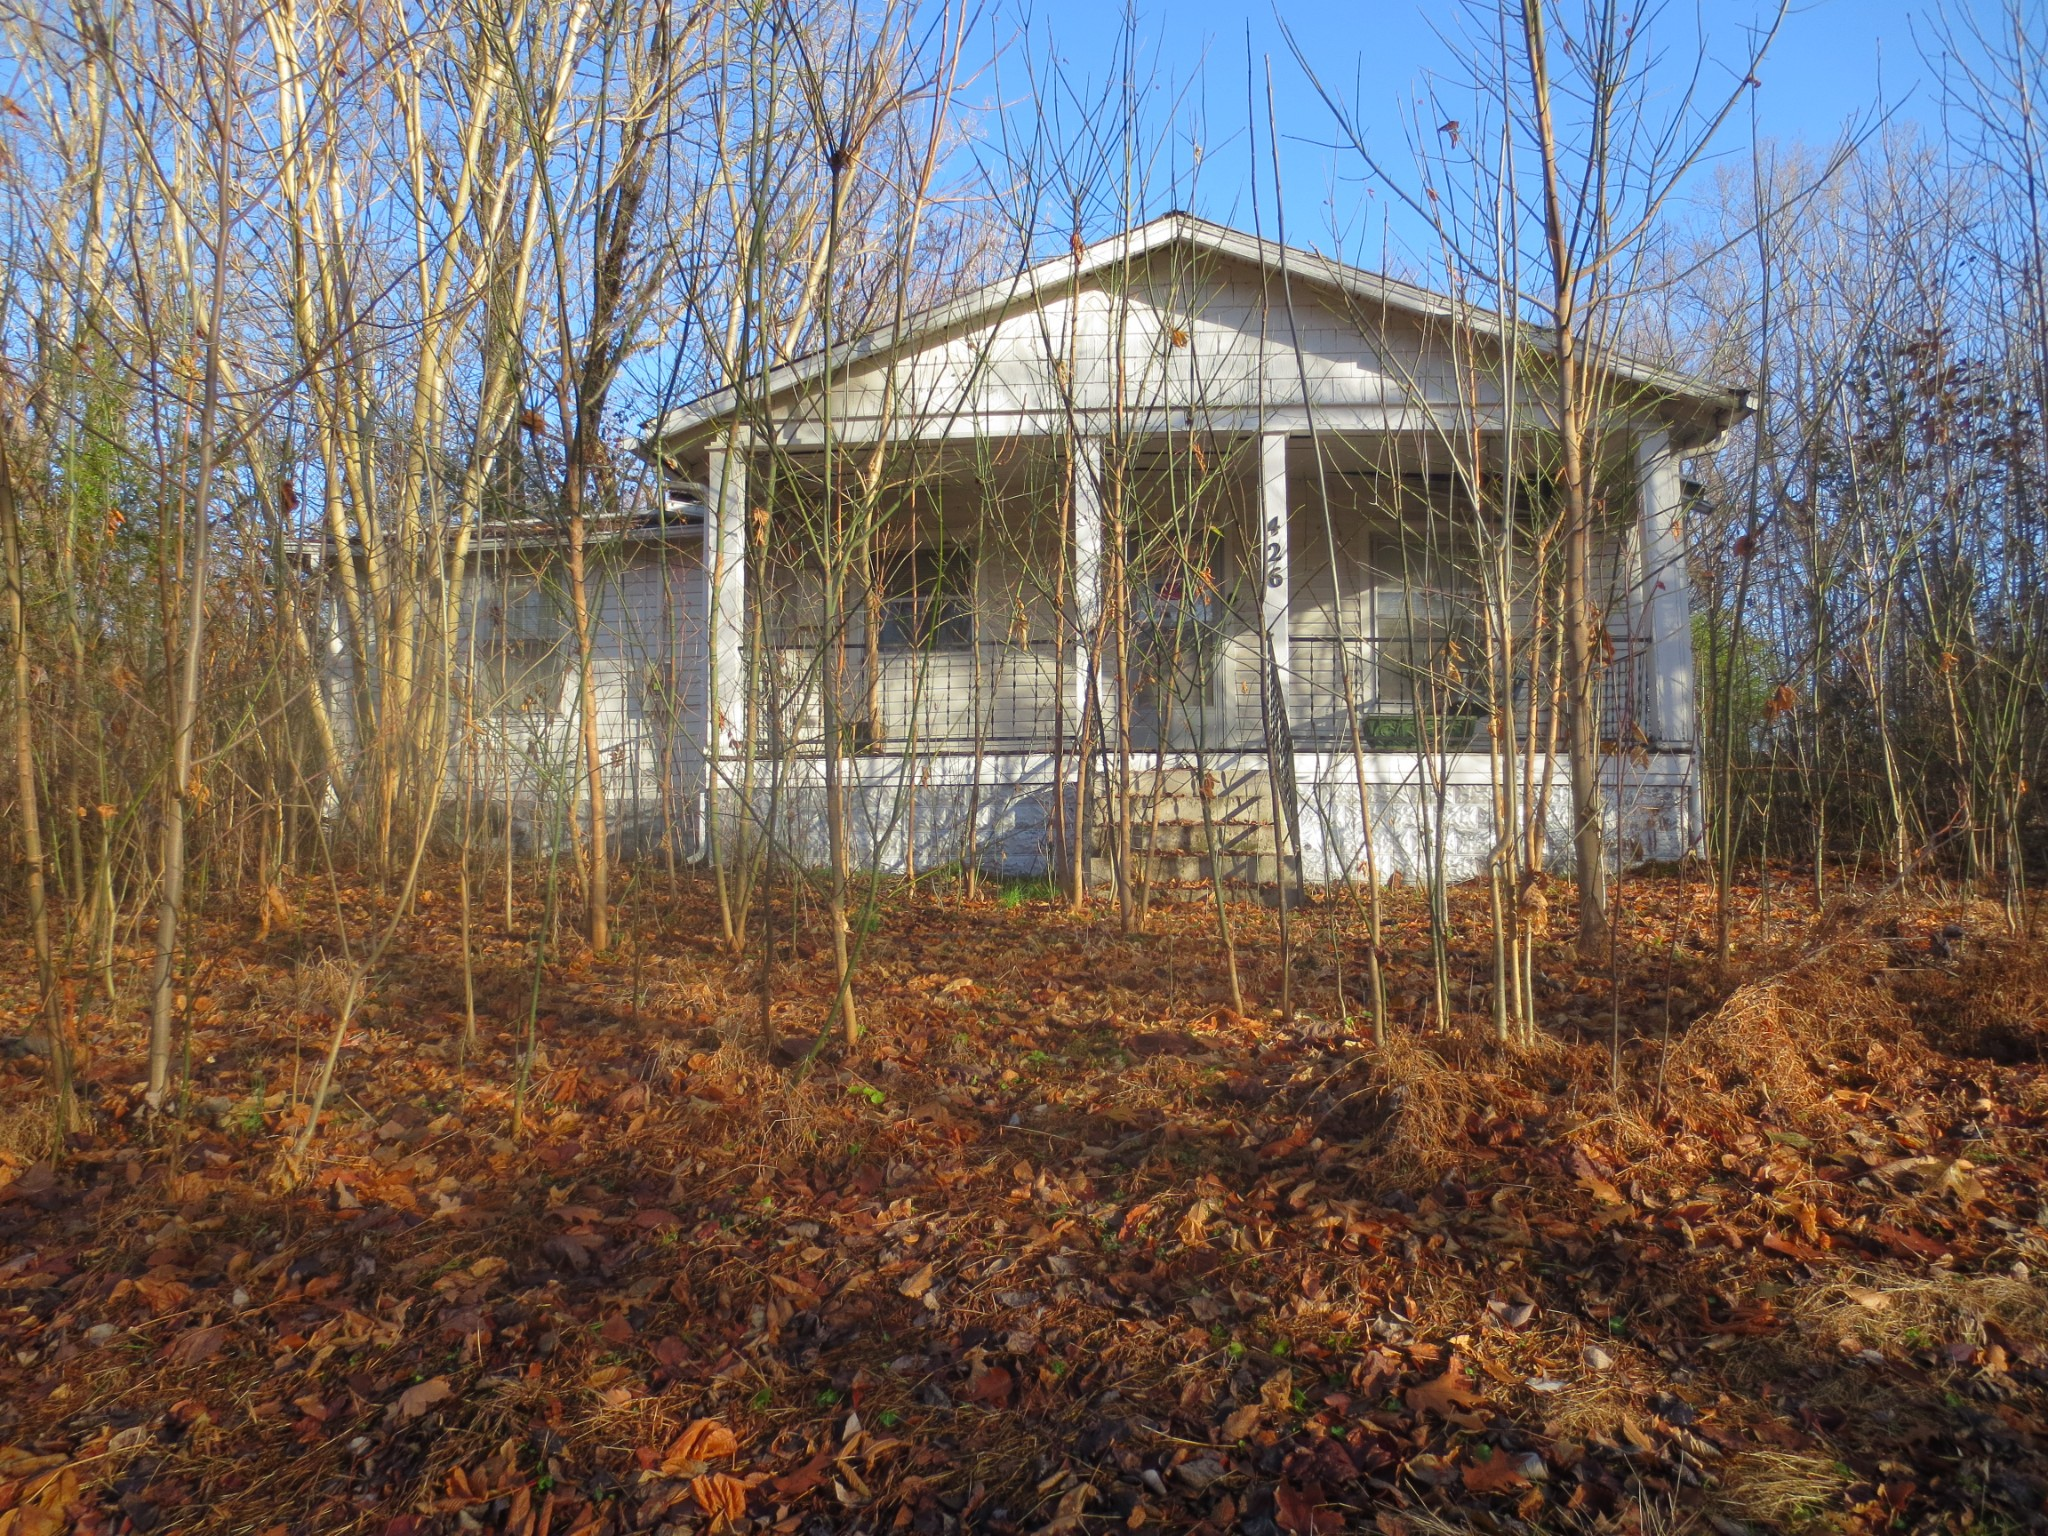 426 Valley View Dr, Red Boiling Springs, TN 37150 - Red Boiling Springs, TN real estate listing